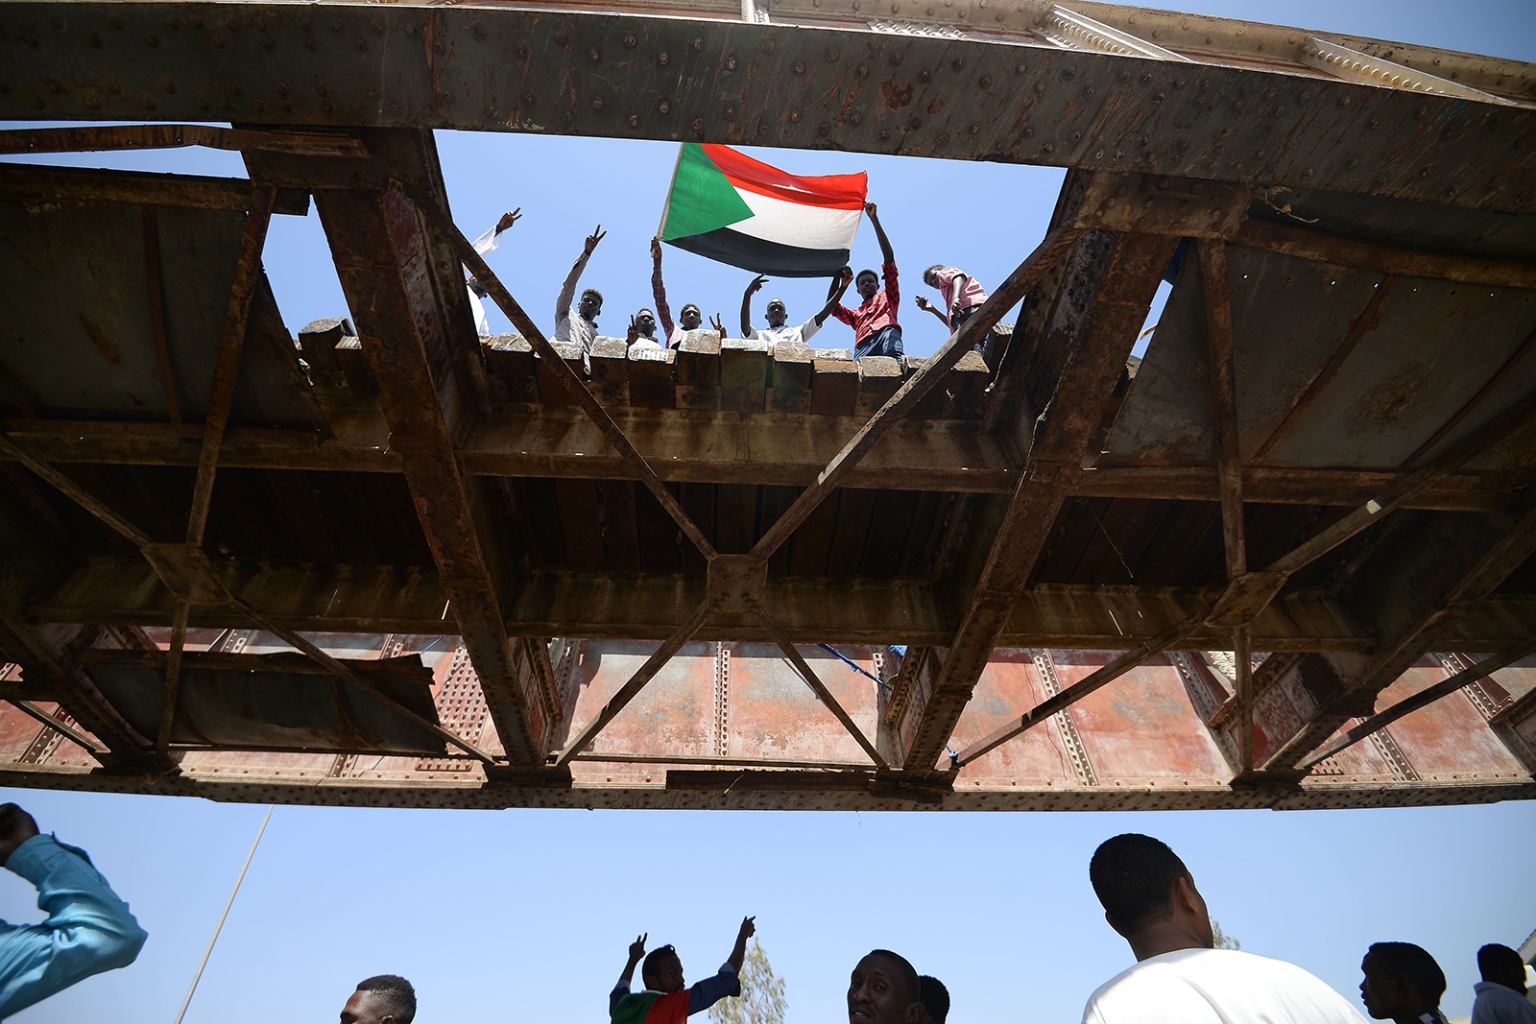 Sudanese protesters wave a national flag during an ongoing sit-in demanding a civilian-led government transition near the military headquarters in the capital Khartoum on May 17. MOHAMED EL-SHAHED/AFP/Getty Images